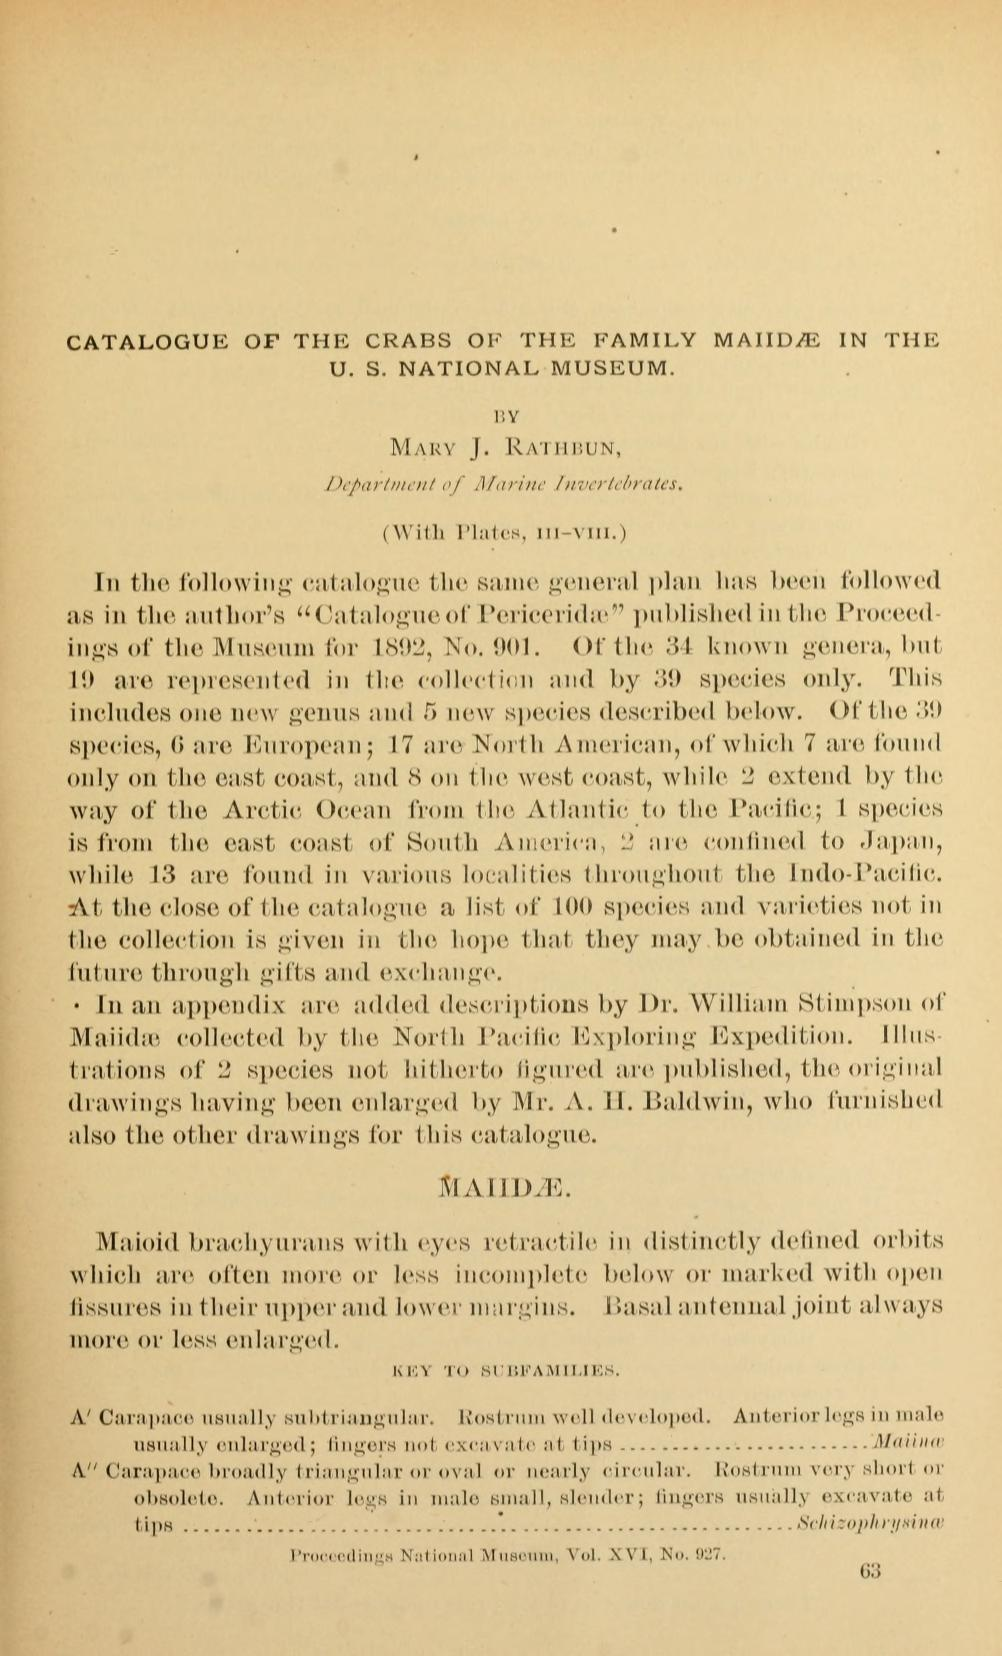 Catalogue of the Crabs of the Family Maiidæ in the U. S. National Museum